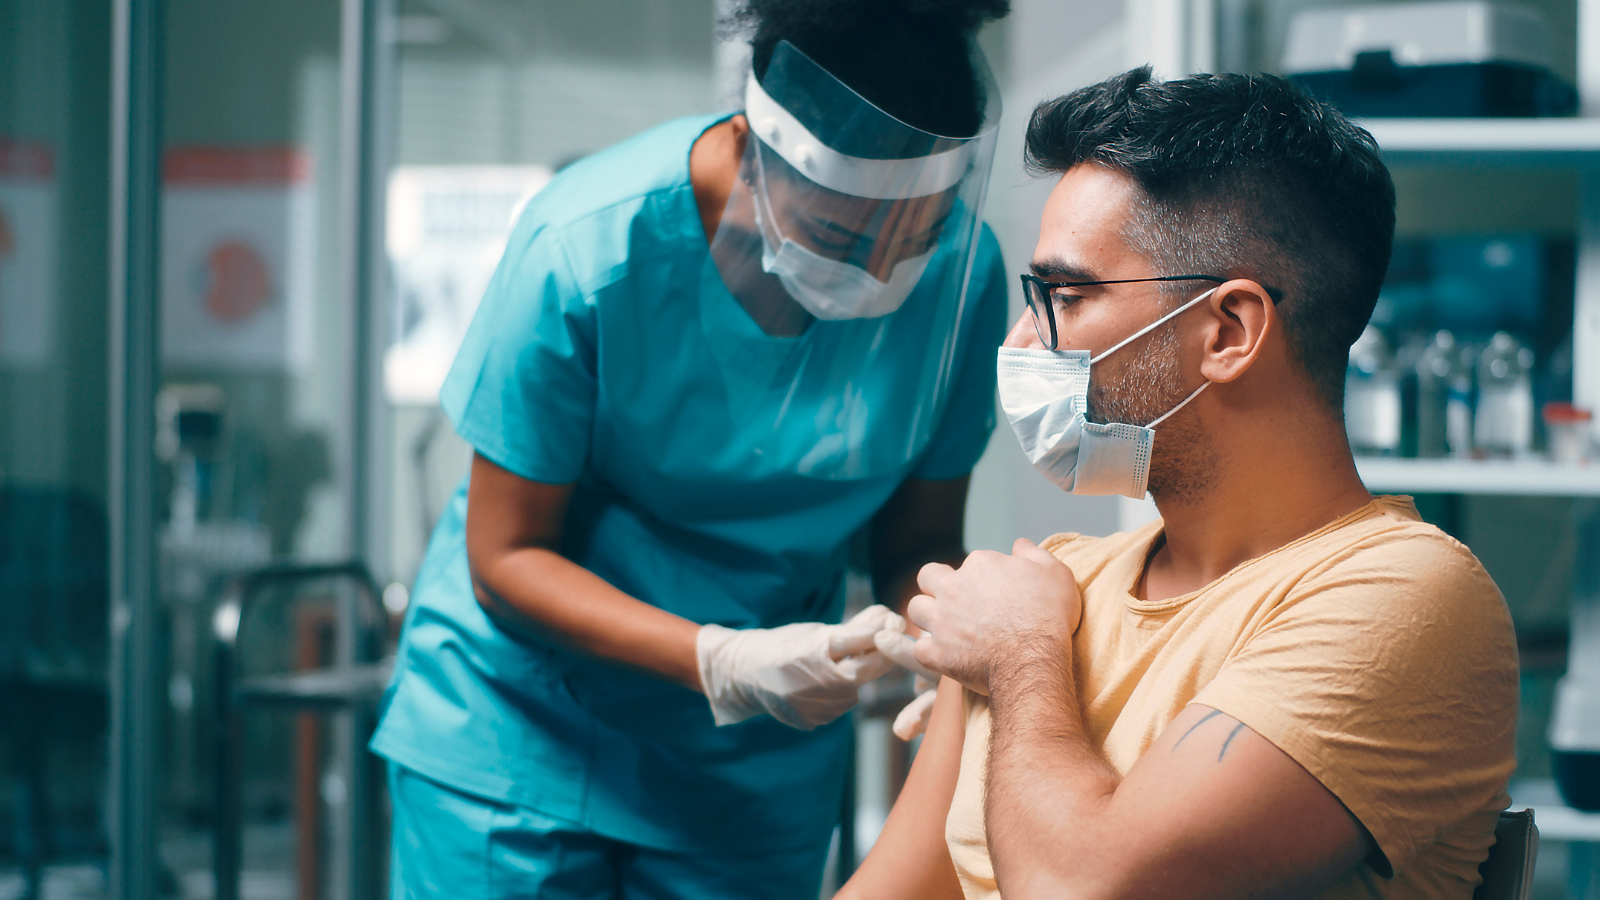 Photo of a woman in blue medical scrubs wearing a surgical mask and face shield injecting needle into the arm of a man wearing glasses and a surgical mask in a light orange t-shirt